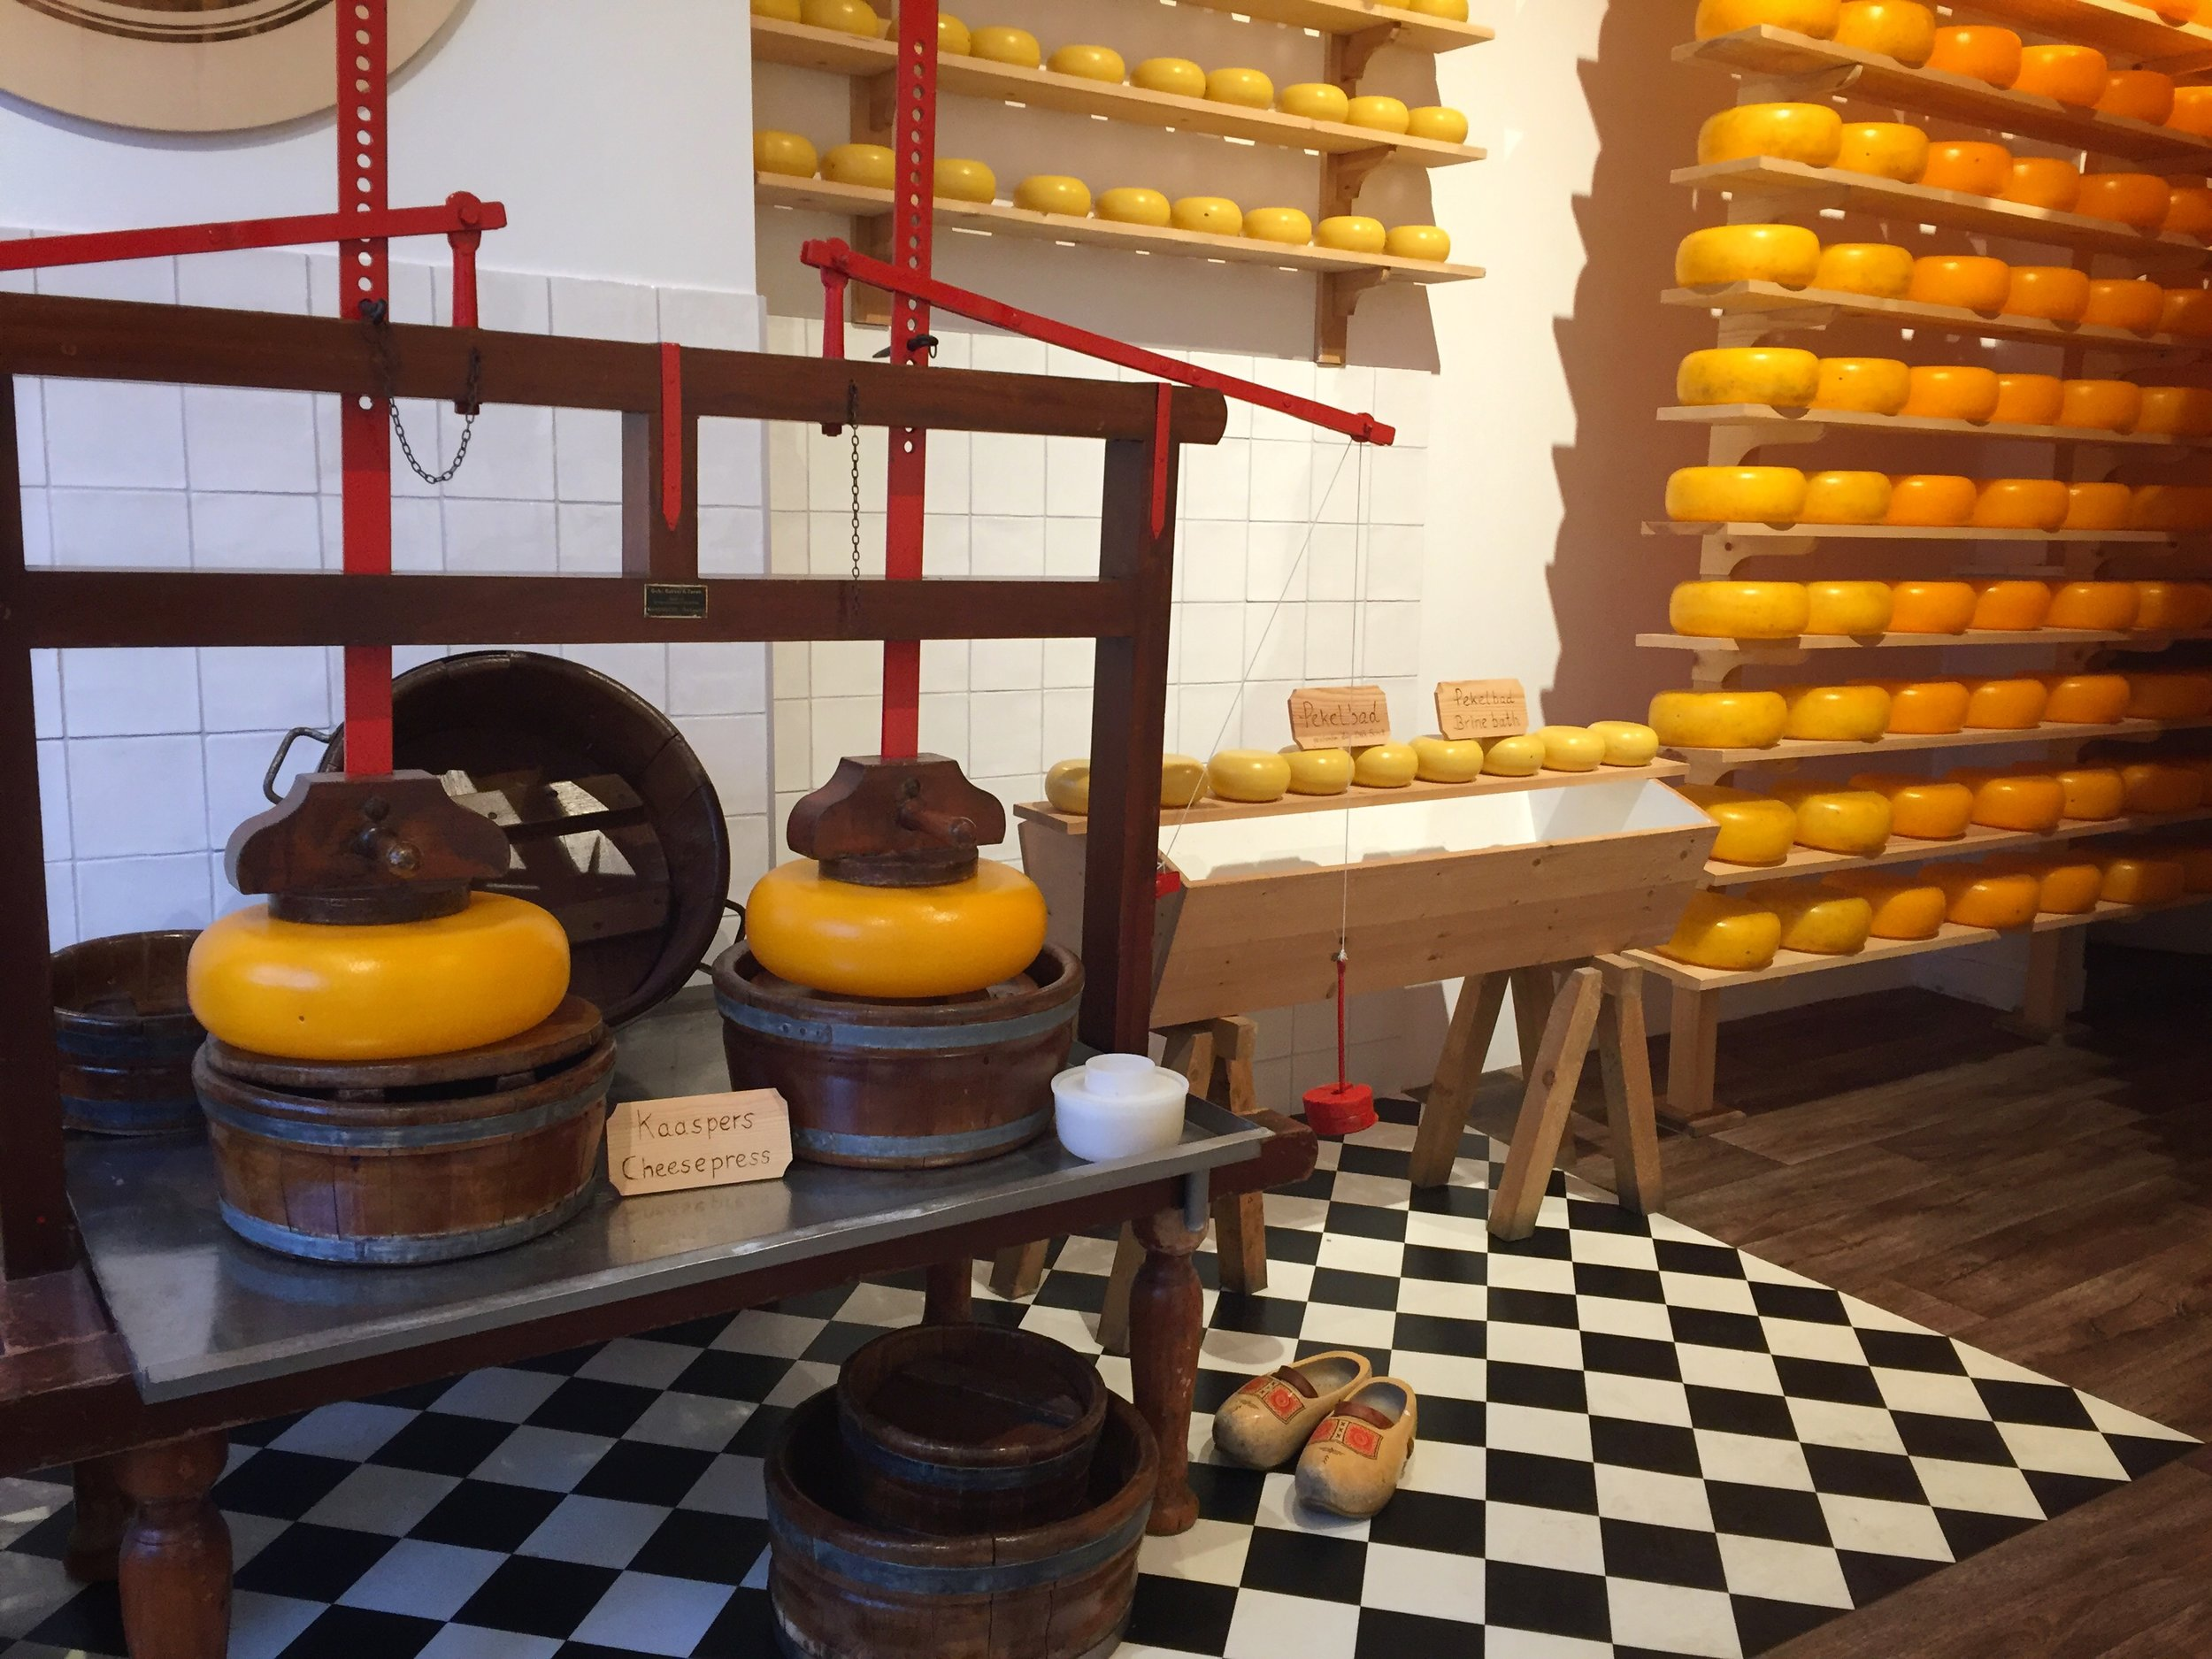 petite cheese museum at Henri Willig shop (Amsterdam)